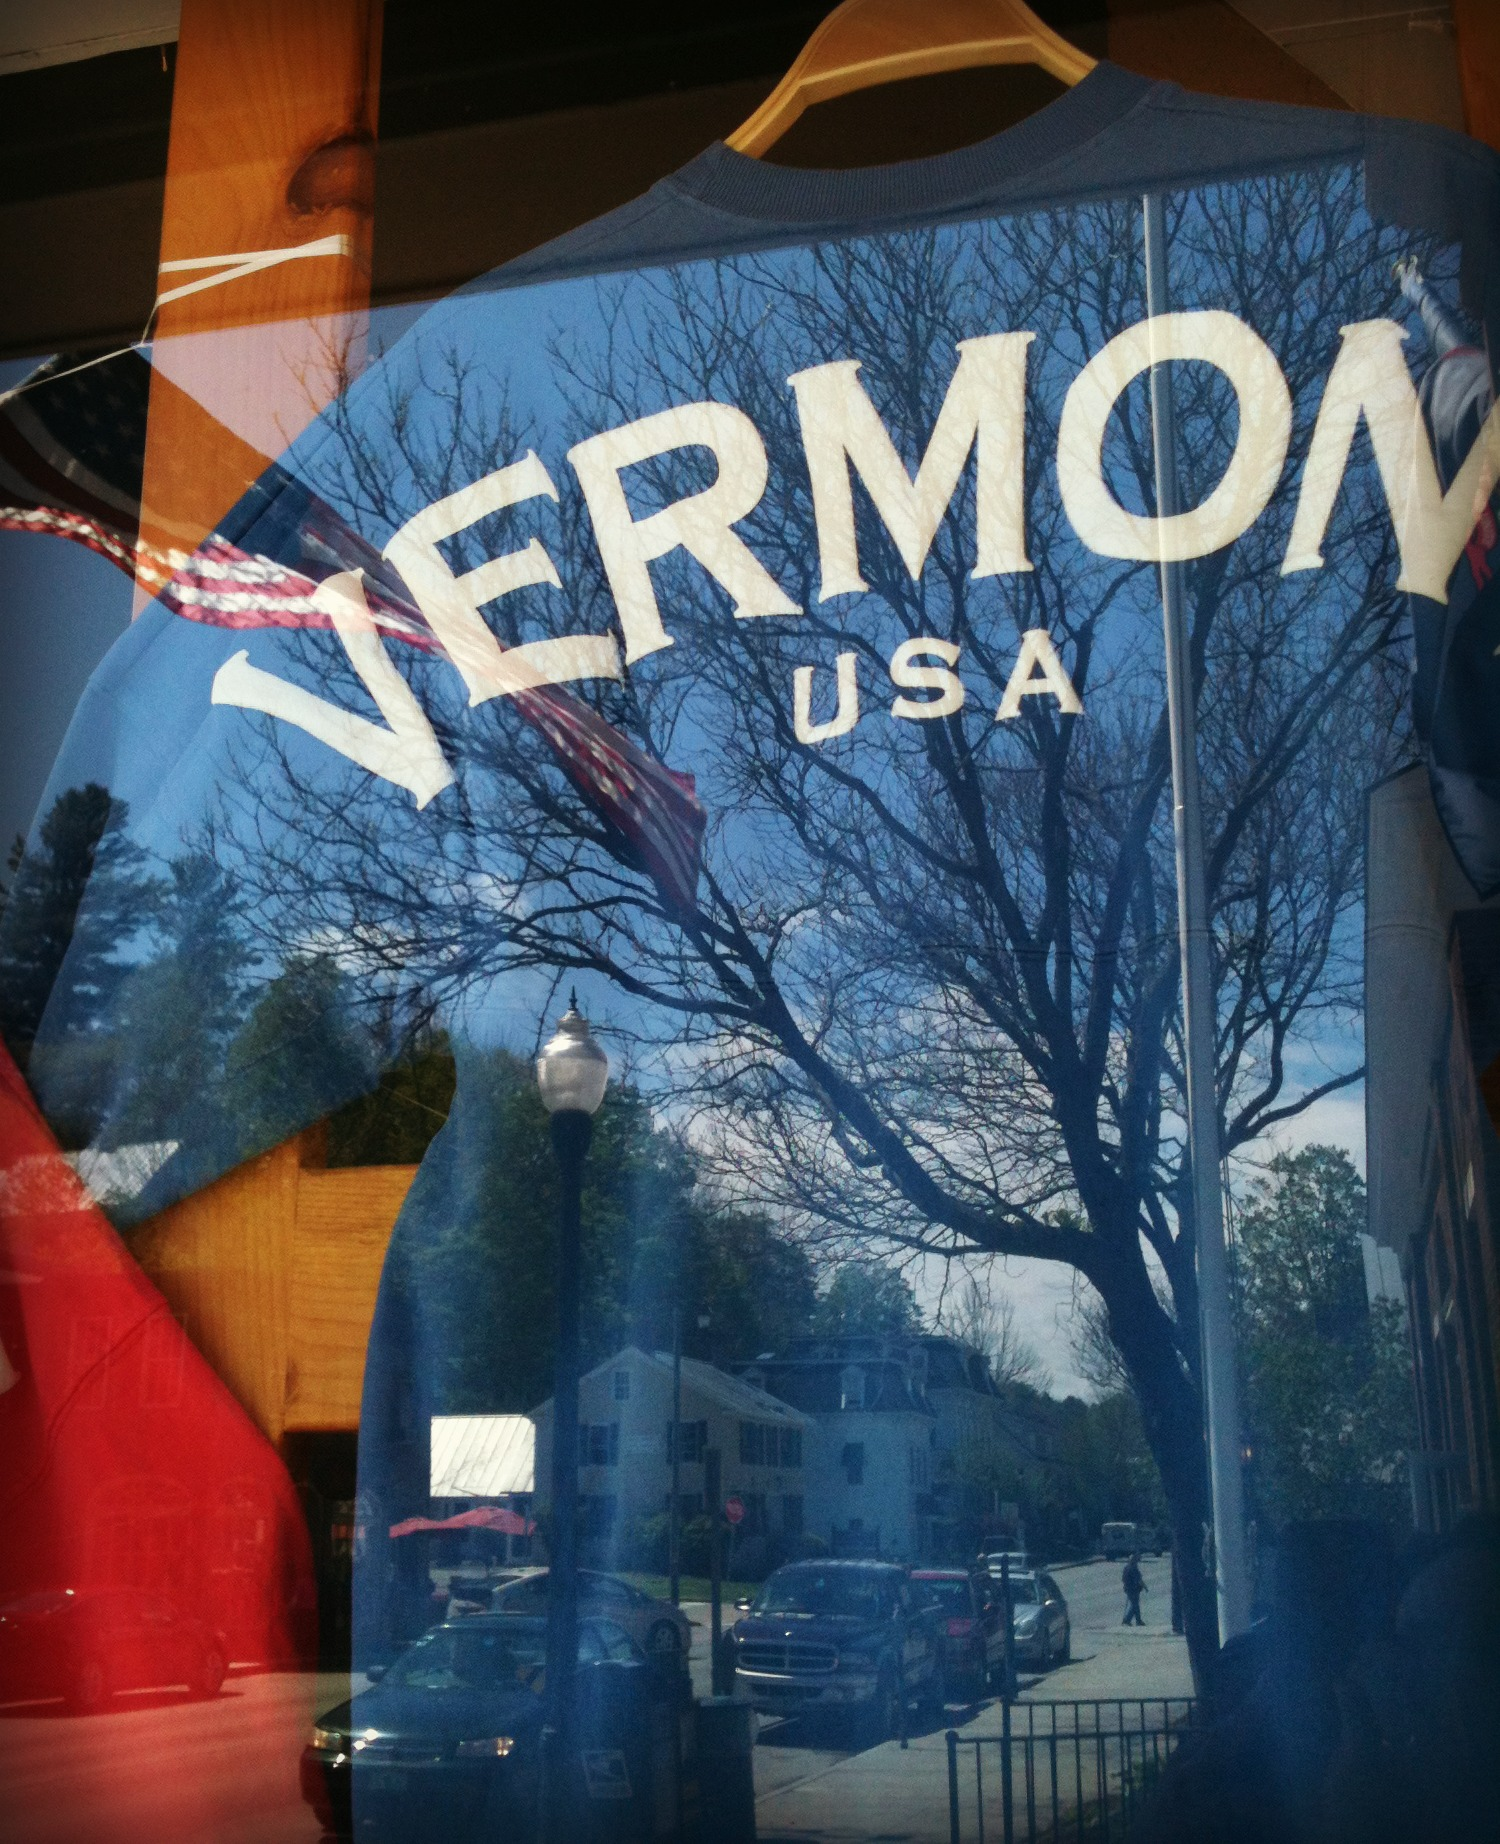 Woodstock Vermont is the perfect small town. Can you see it reflected in the tee shirt?